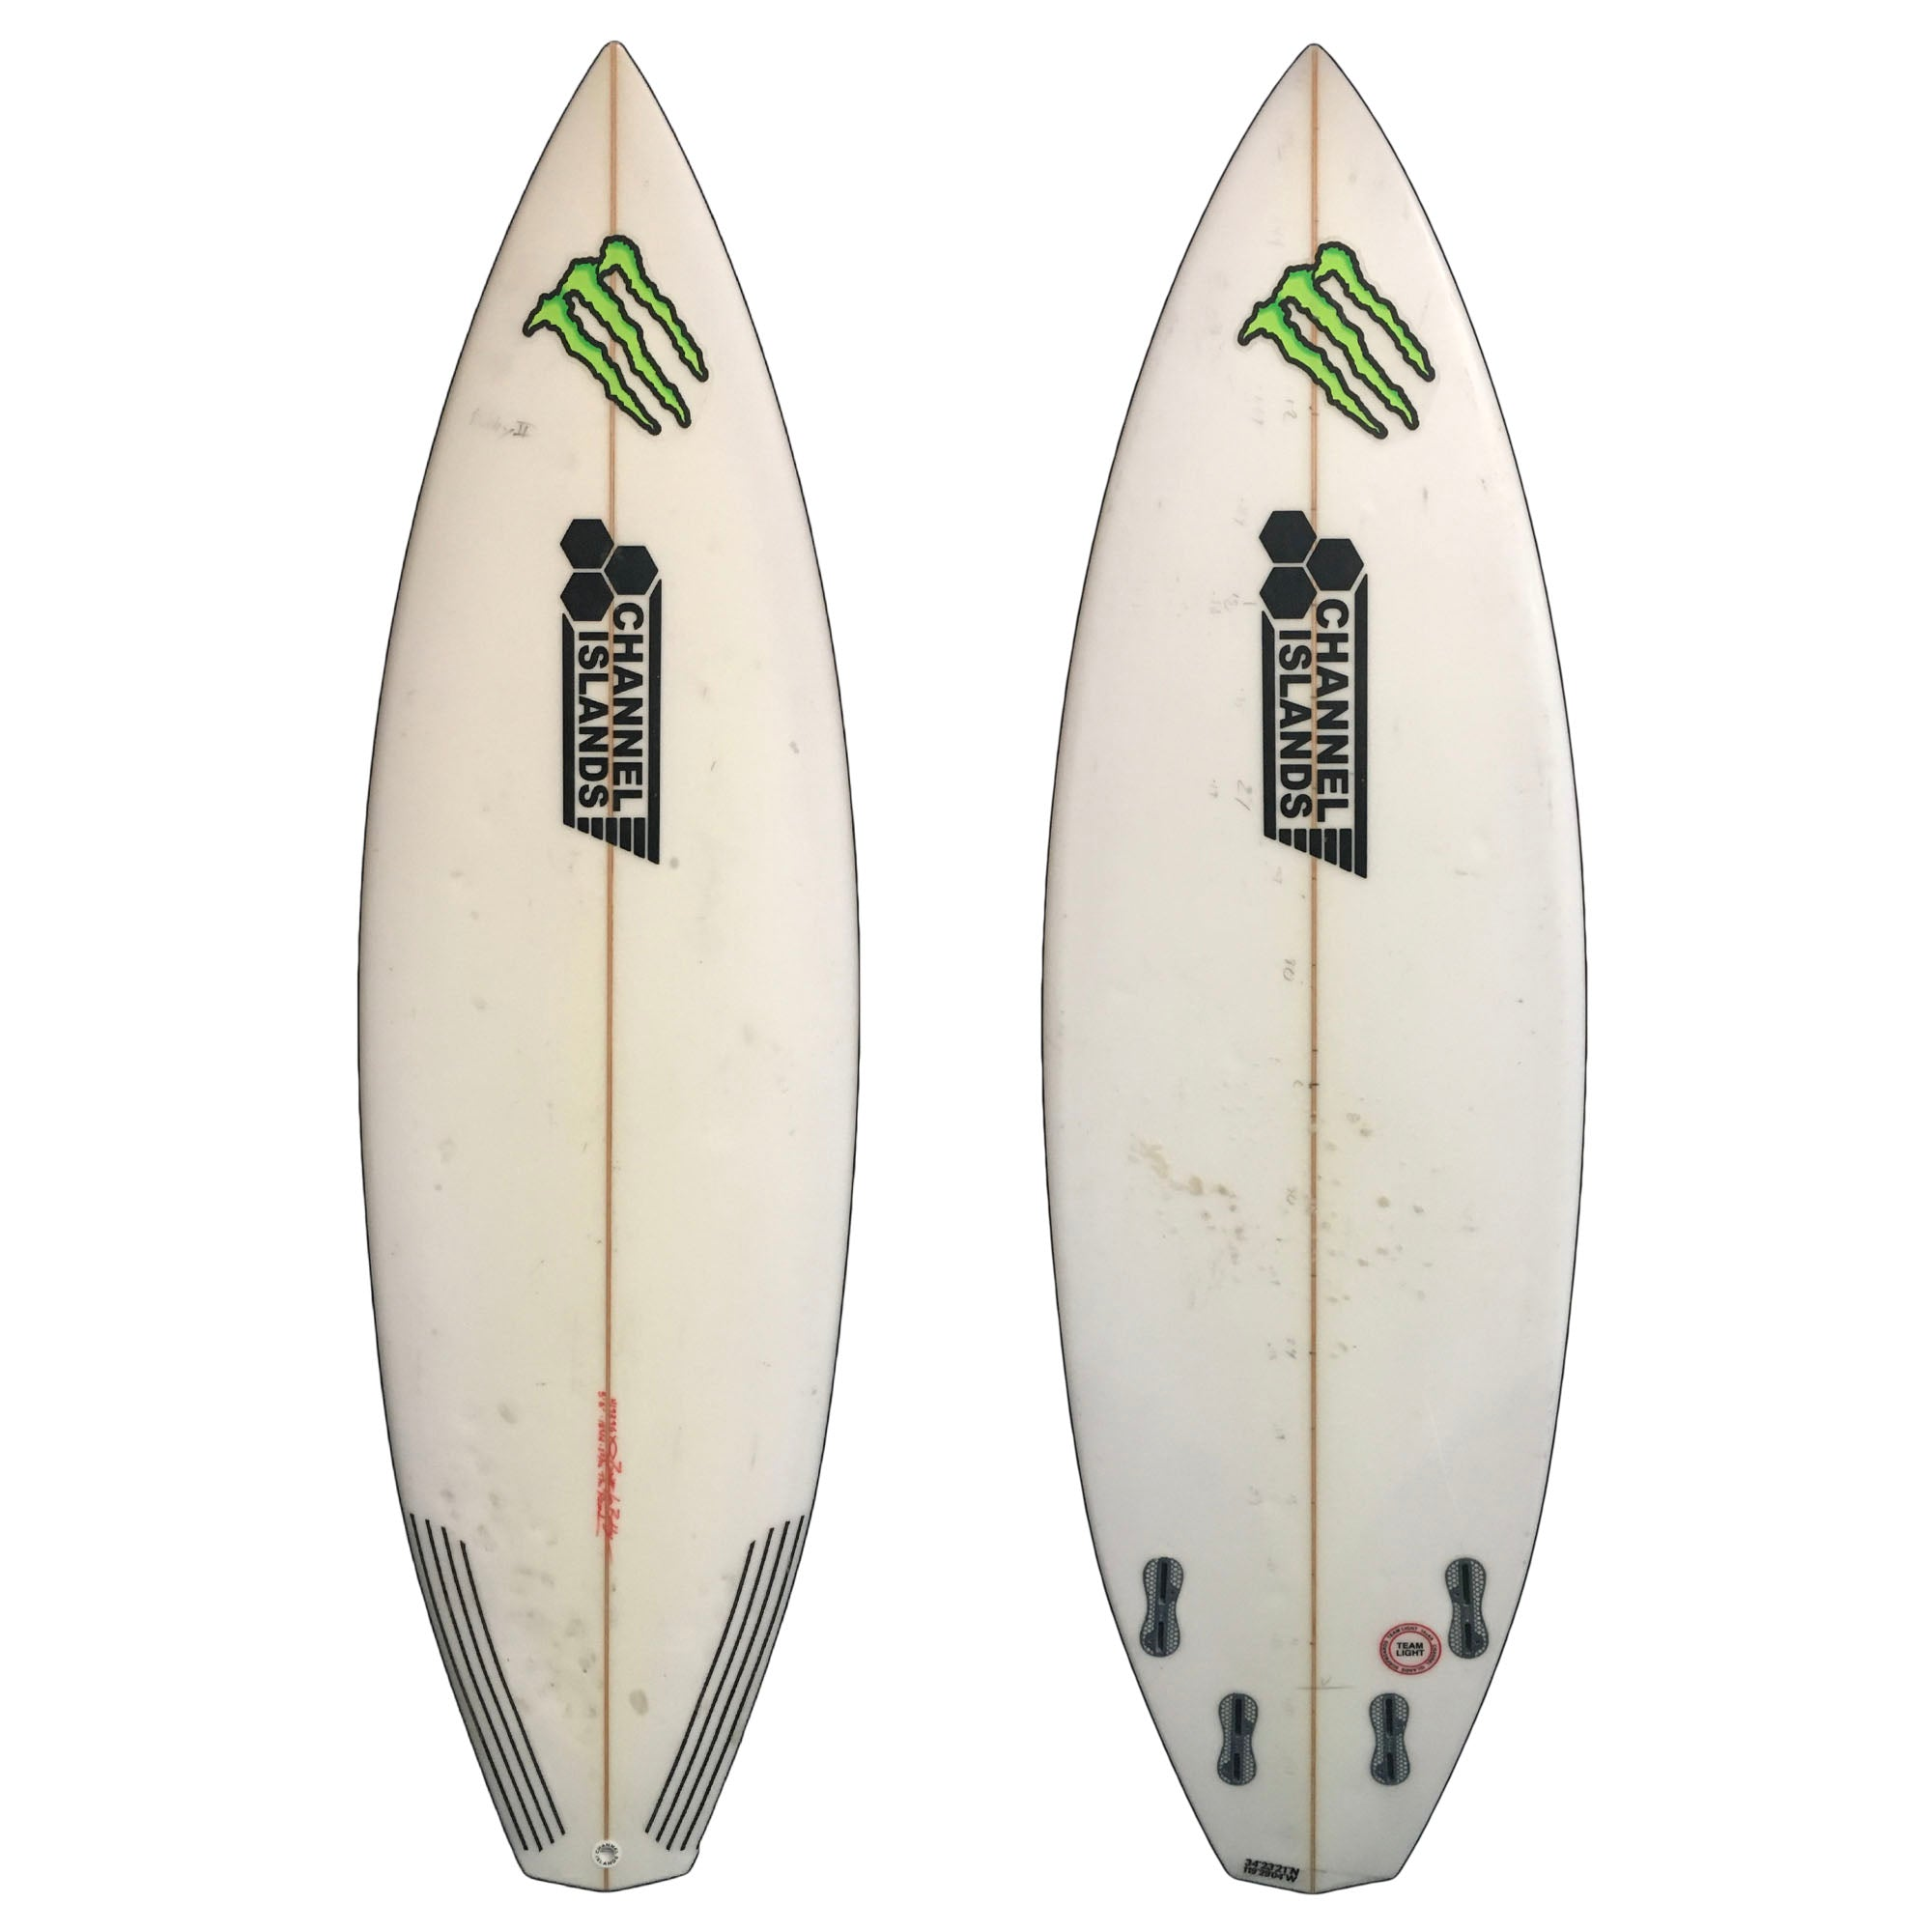 Channel Islands Proto 5'8 Used Surfboard (Team custom for Bobby Martinez)